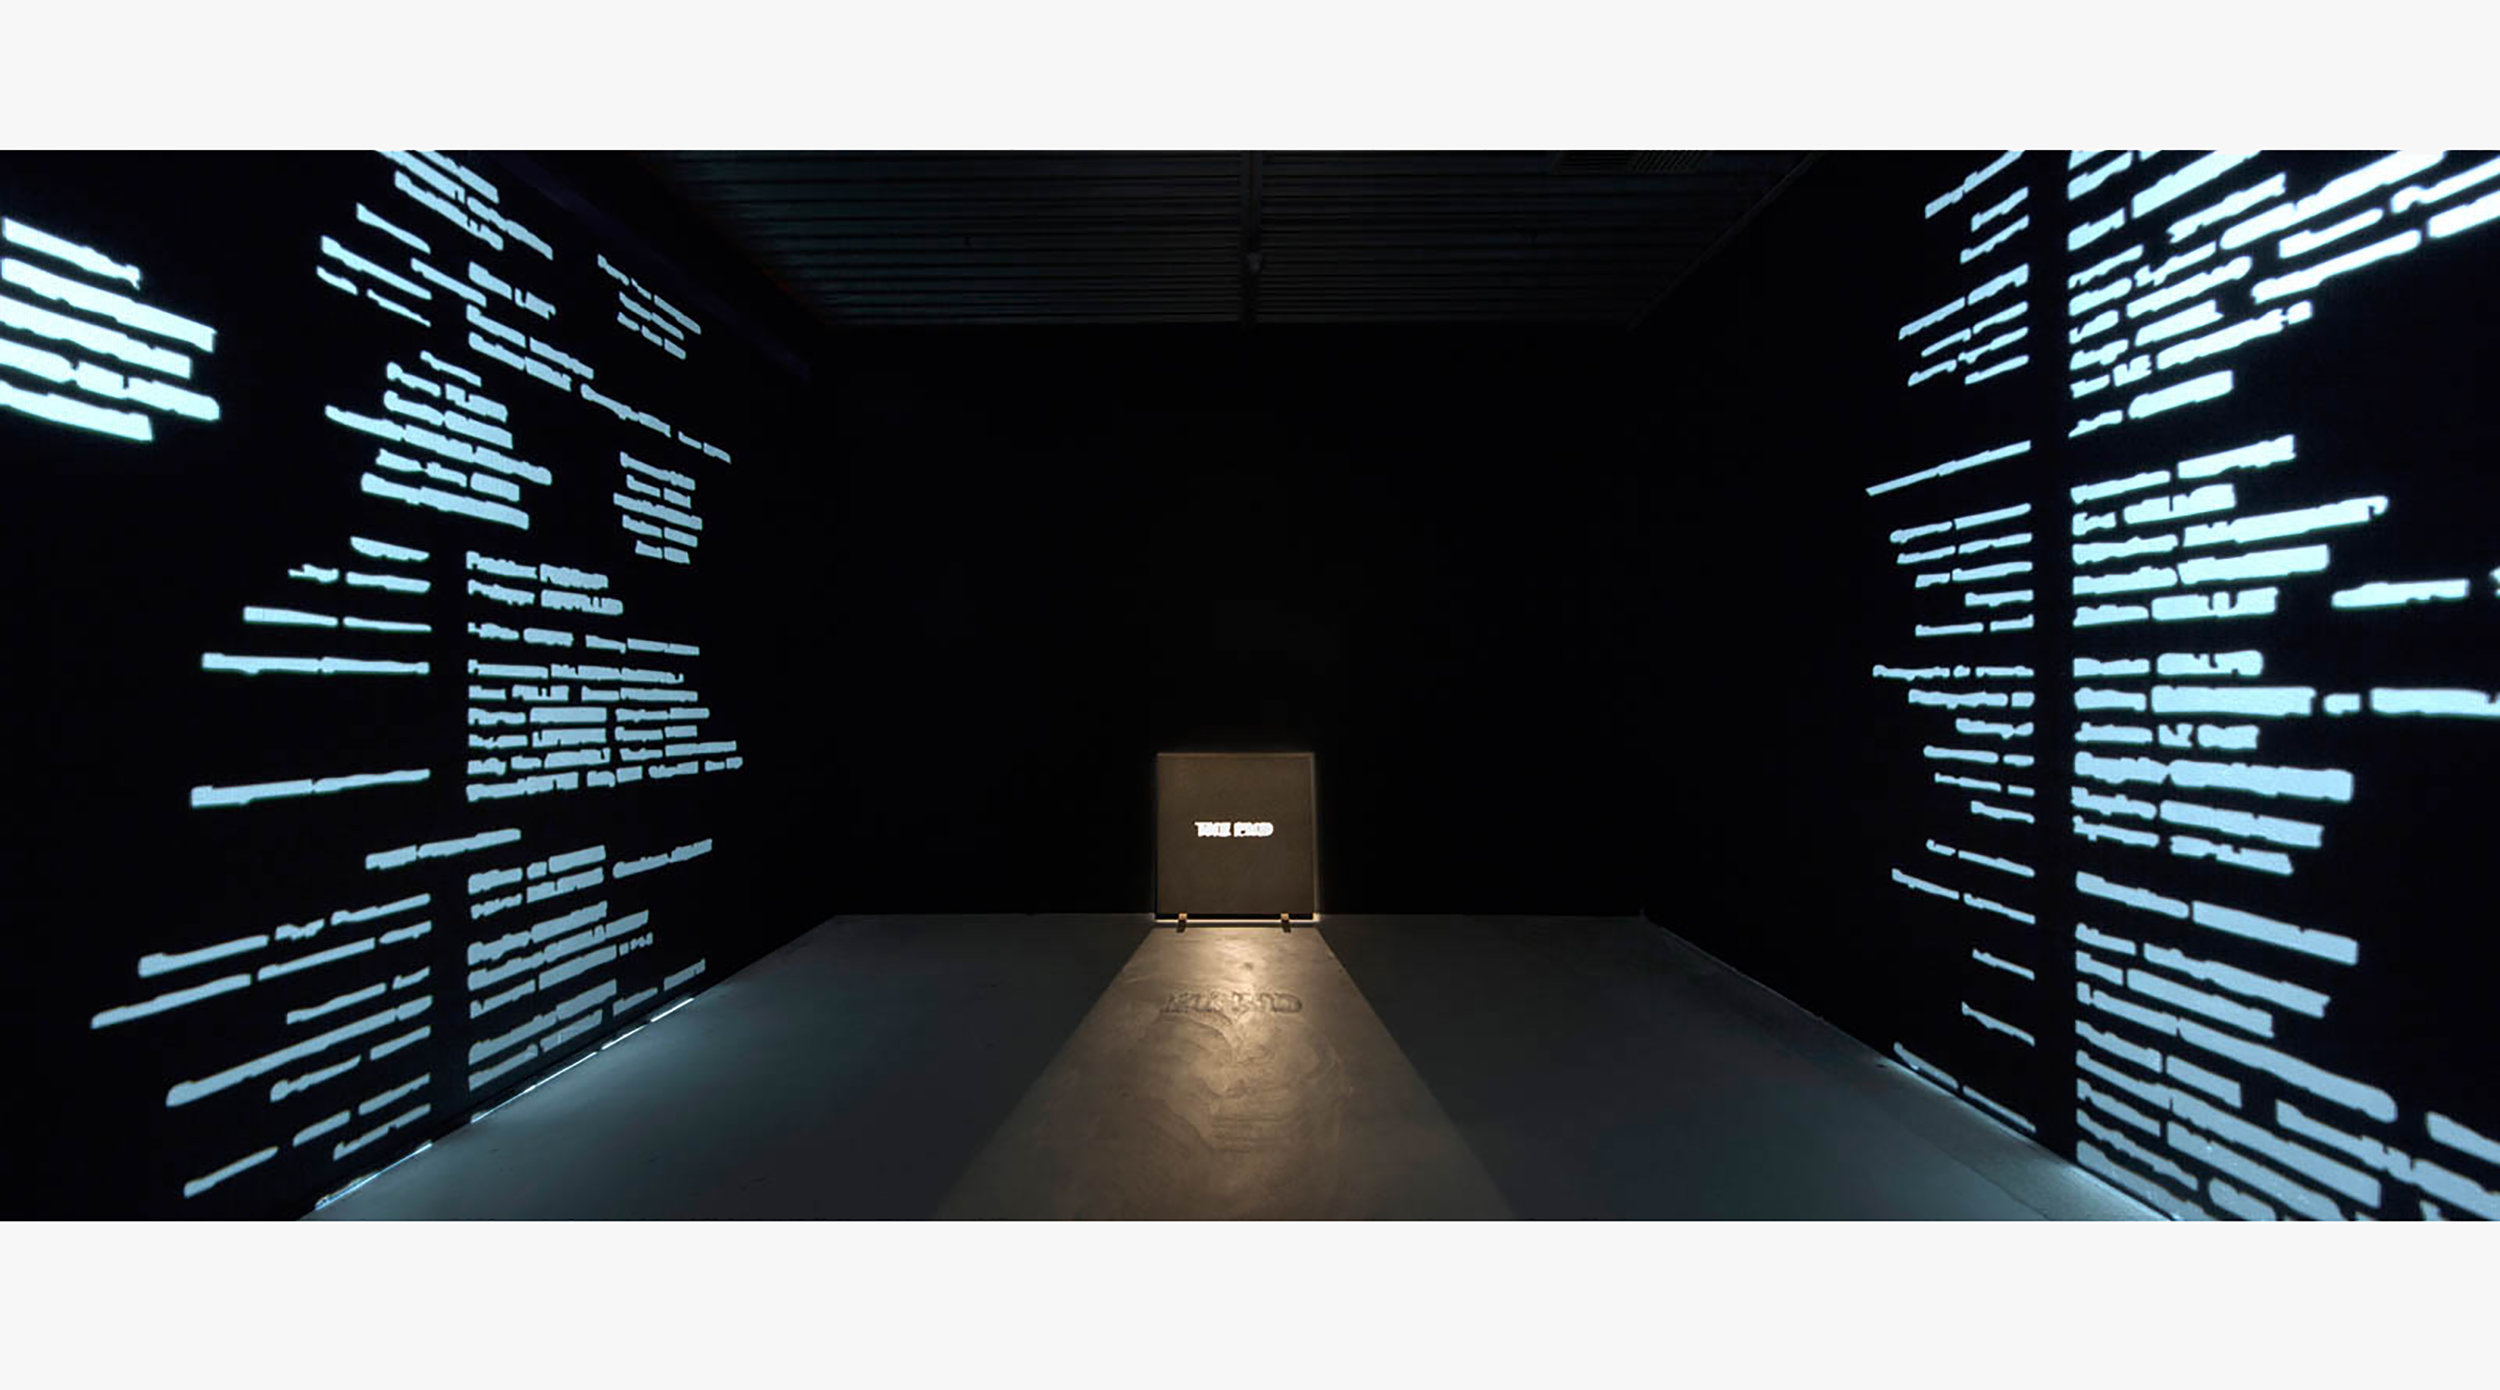 THE END [JUST HAPPENED] (2010-2013) video installation, loop, sound, 100x100x2cm black granite tile, paint